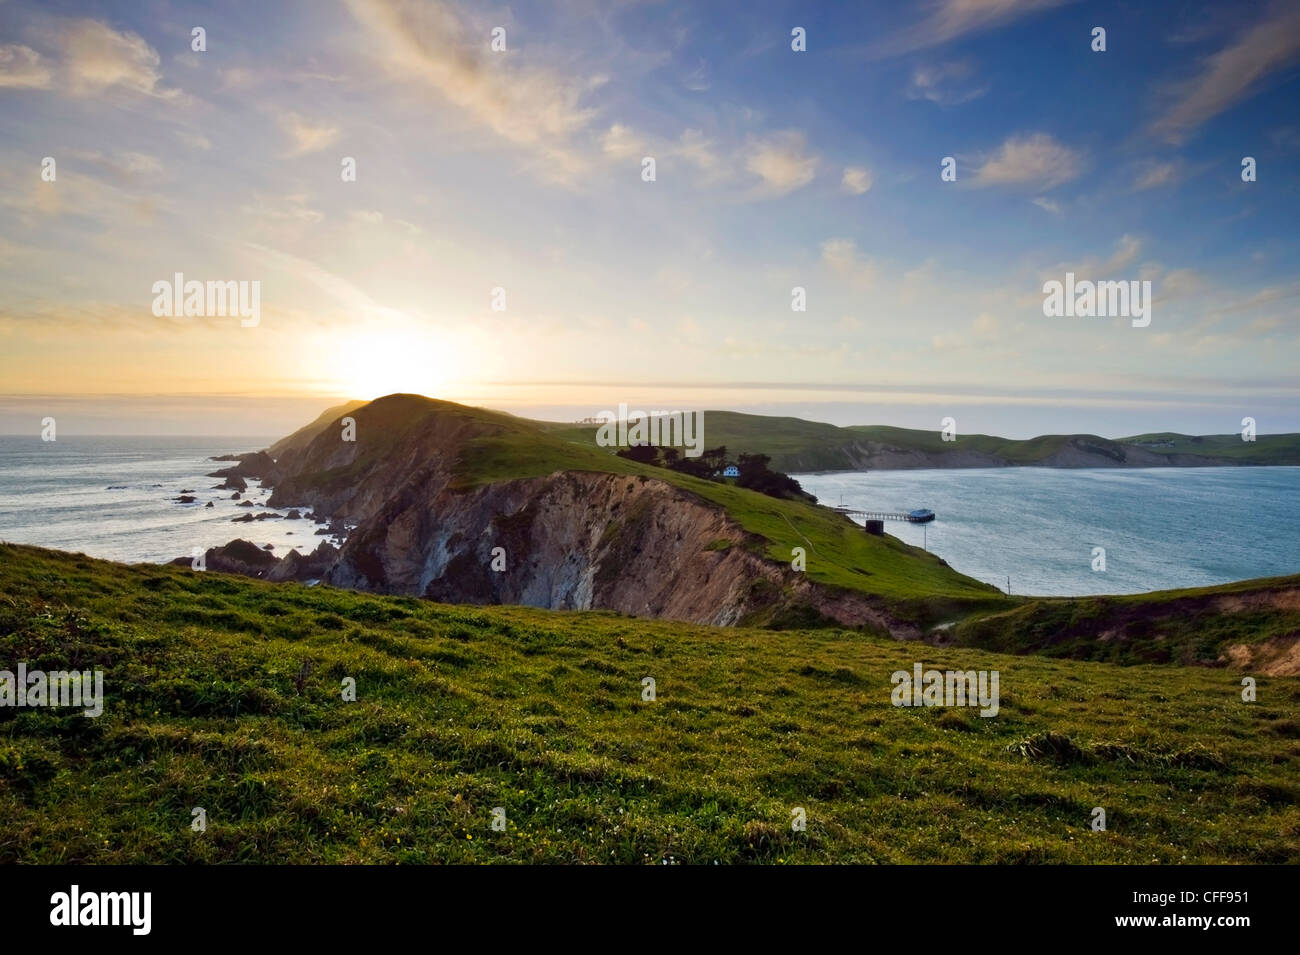 Point Reyes National Seashore bei Sonnenuntergang auf der Nordküste California, USA. Stockbild